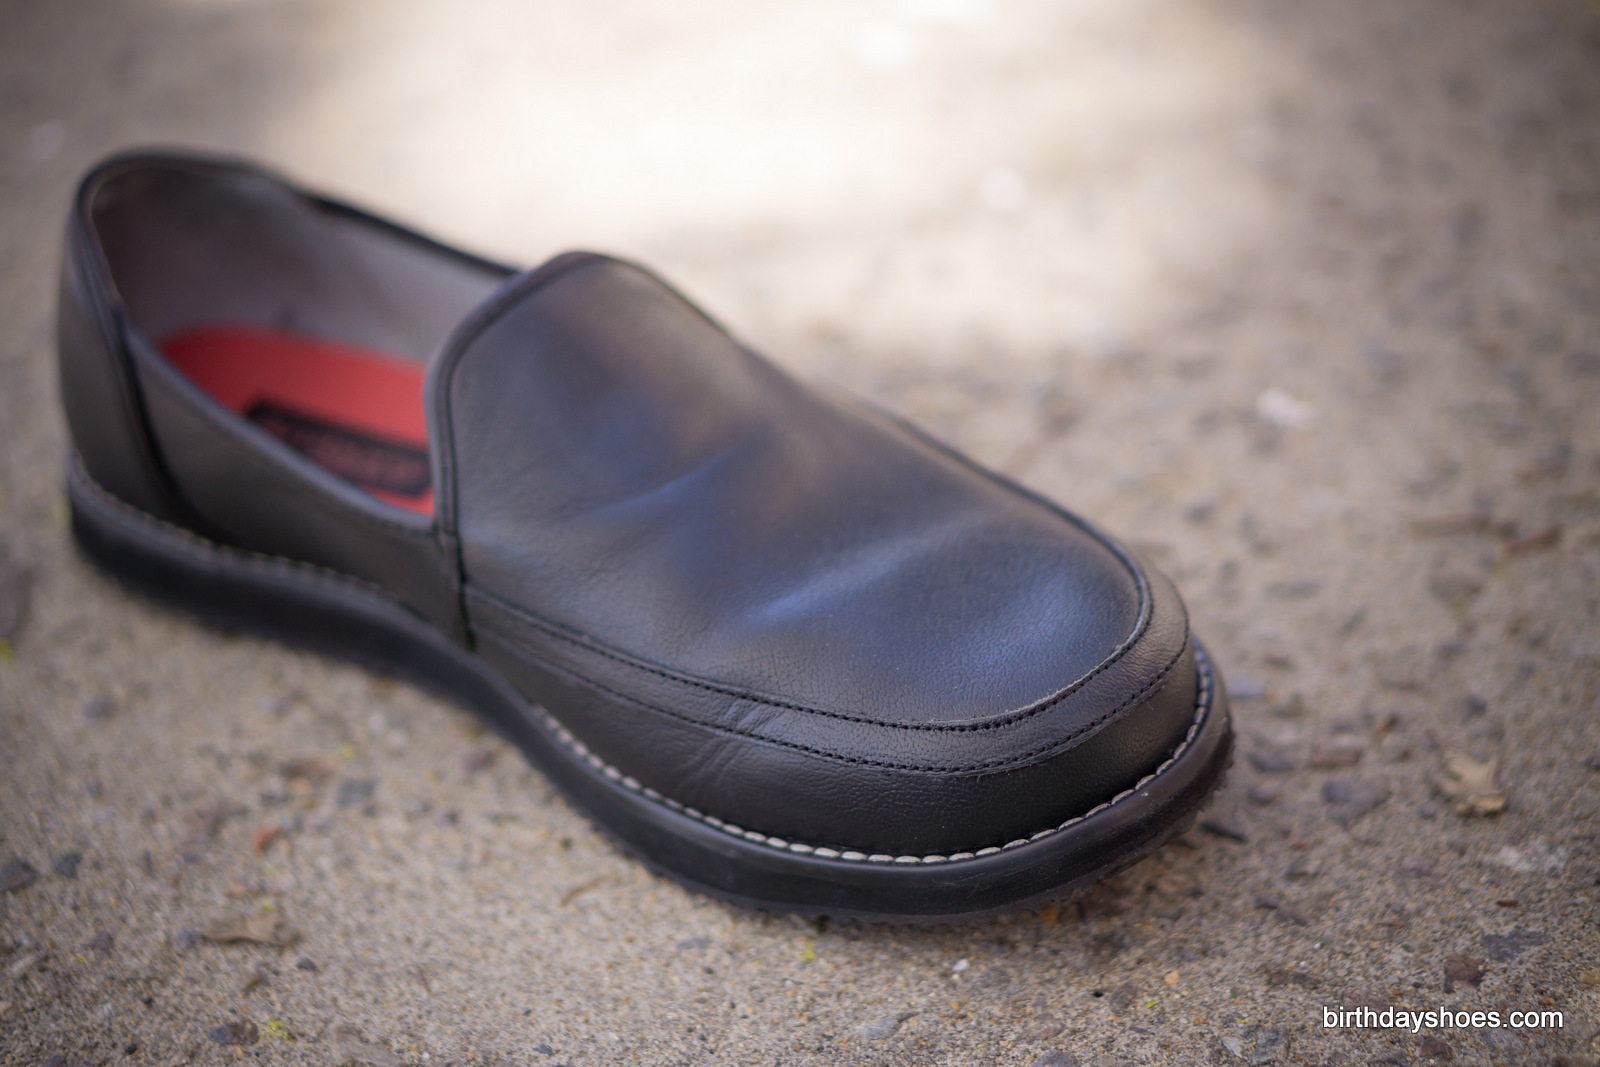 Excellent leather quality, craftsmanship, and stitching